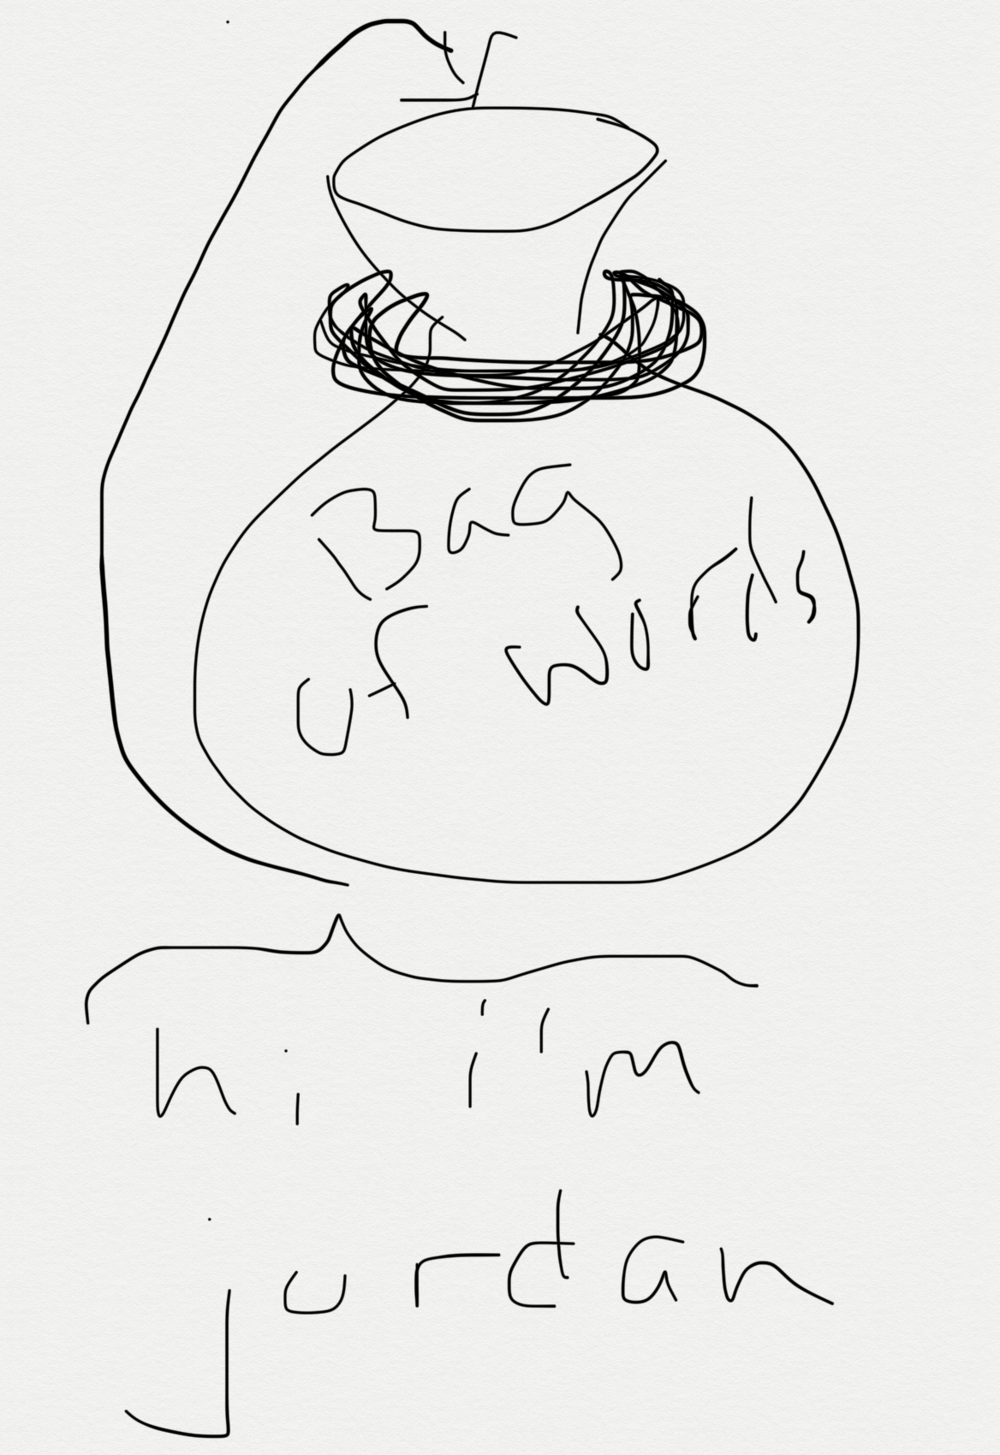 A Bag of Words. Apologies for my horrible art skills.